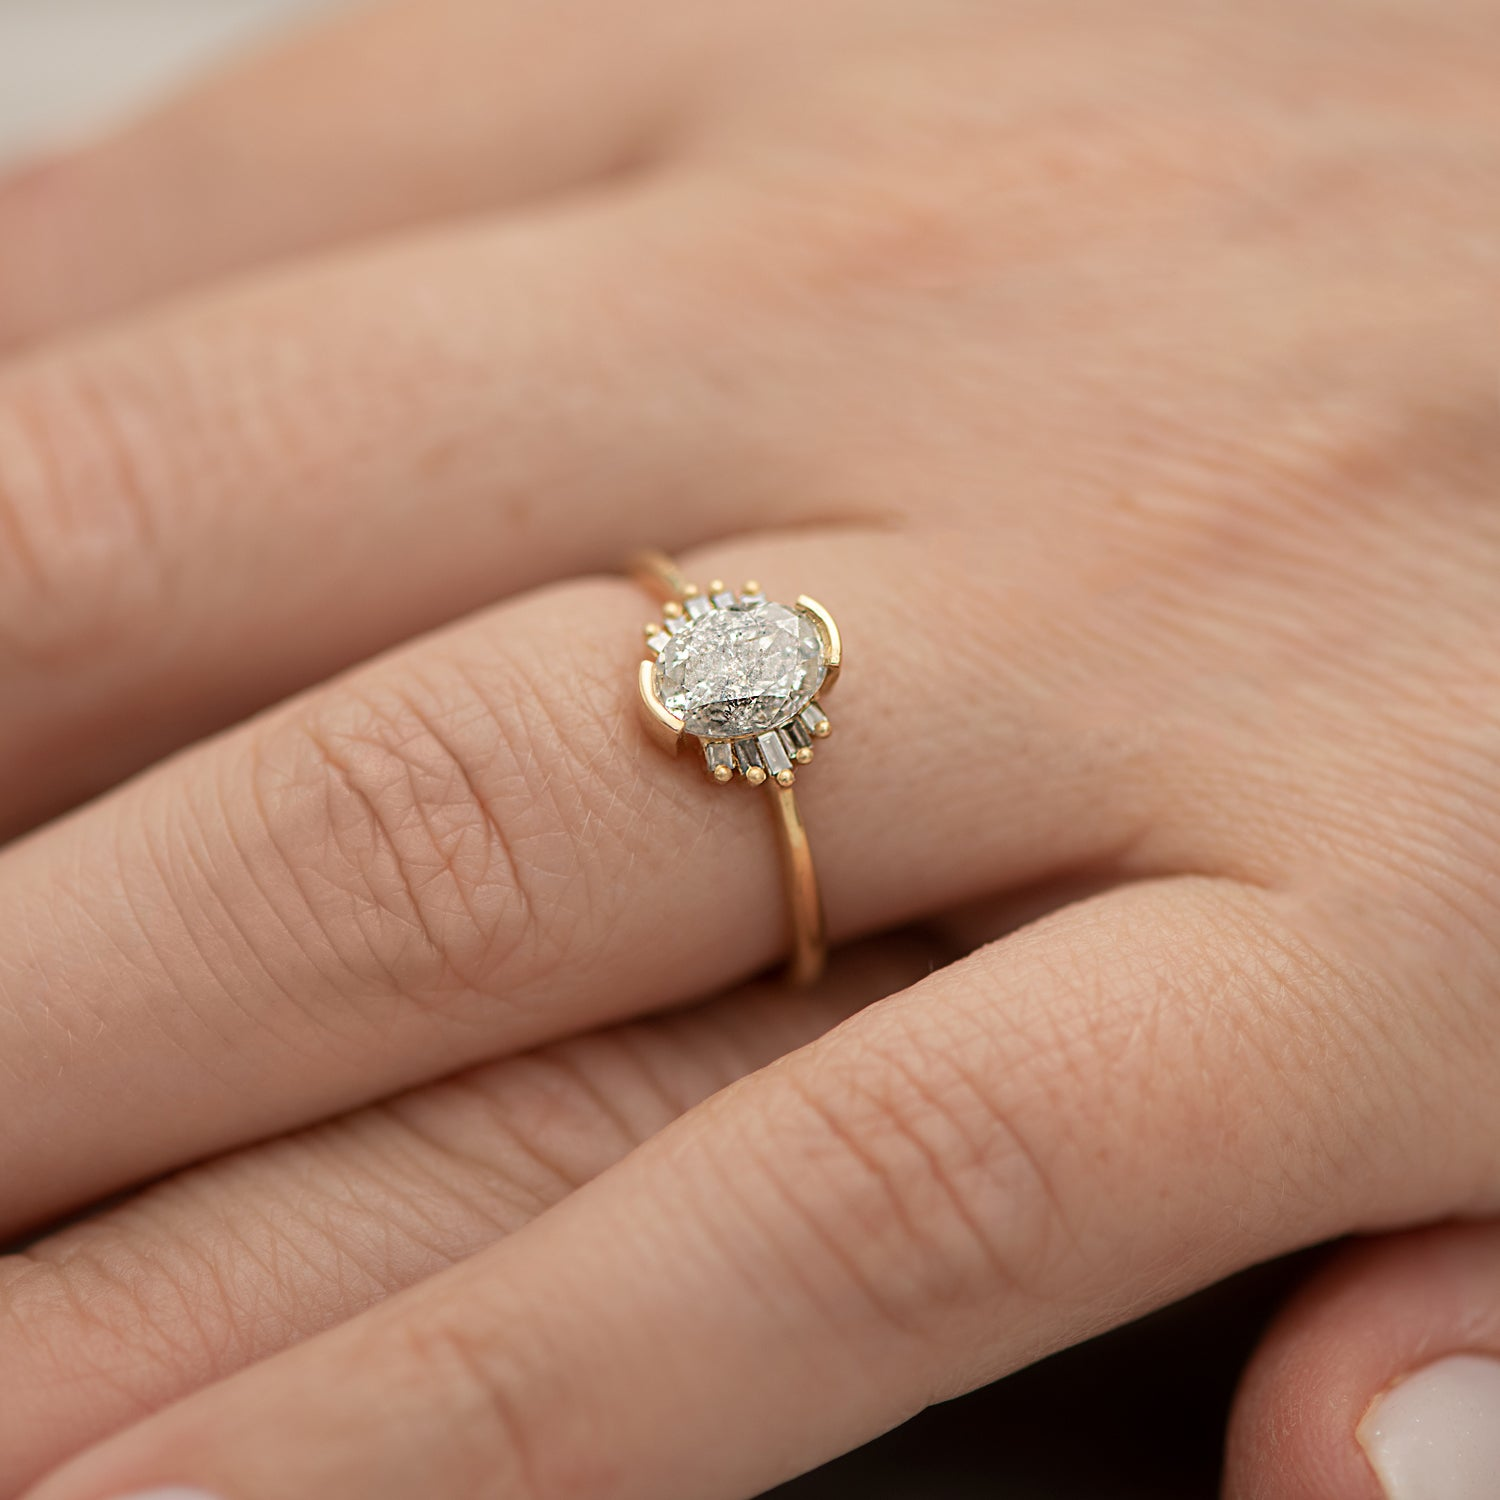 Oval-Cut-Salt-and-Pepper-Diamond-Engagement-Ring-with-Baguette-Frills-on-hand